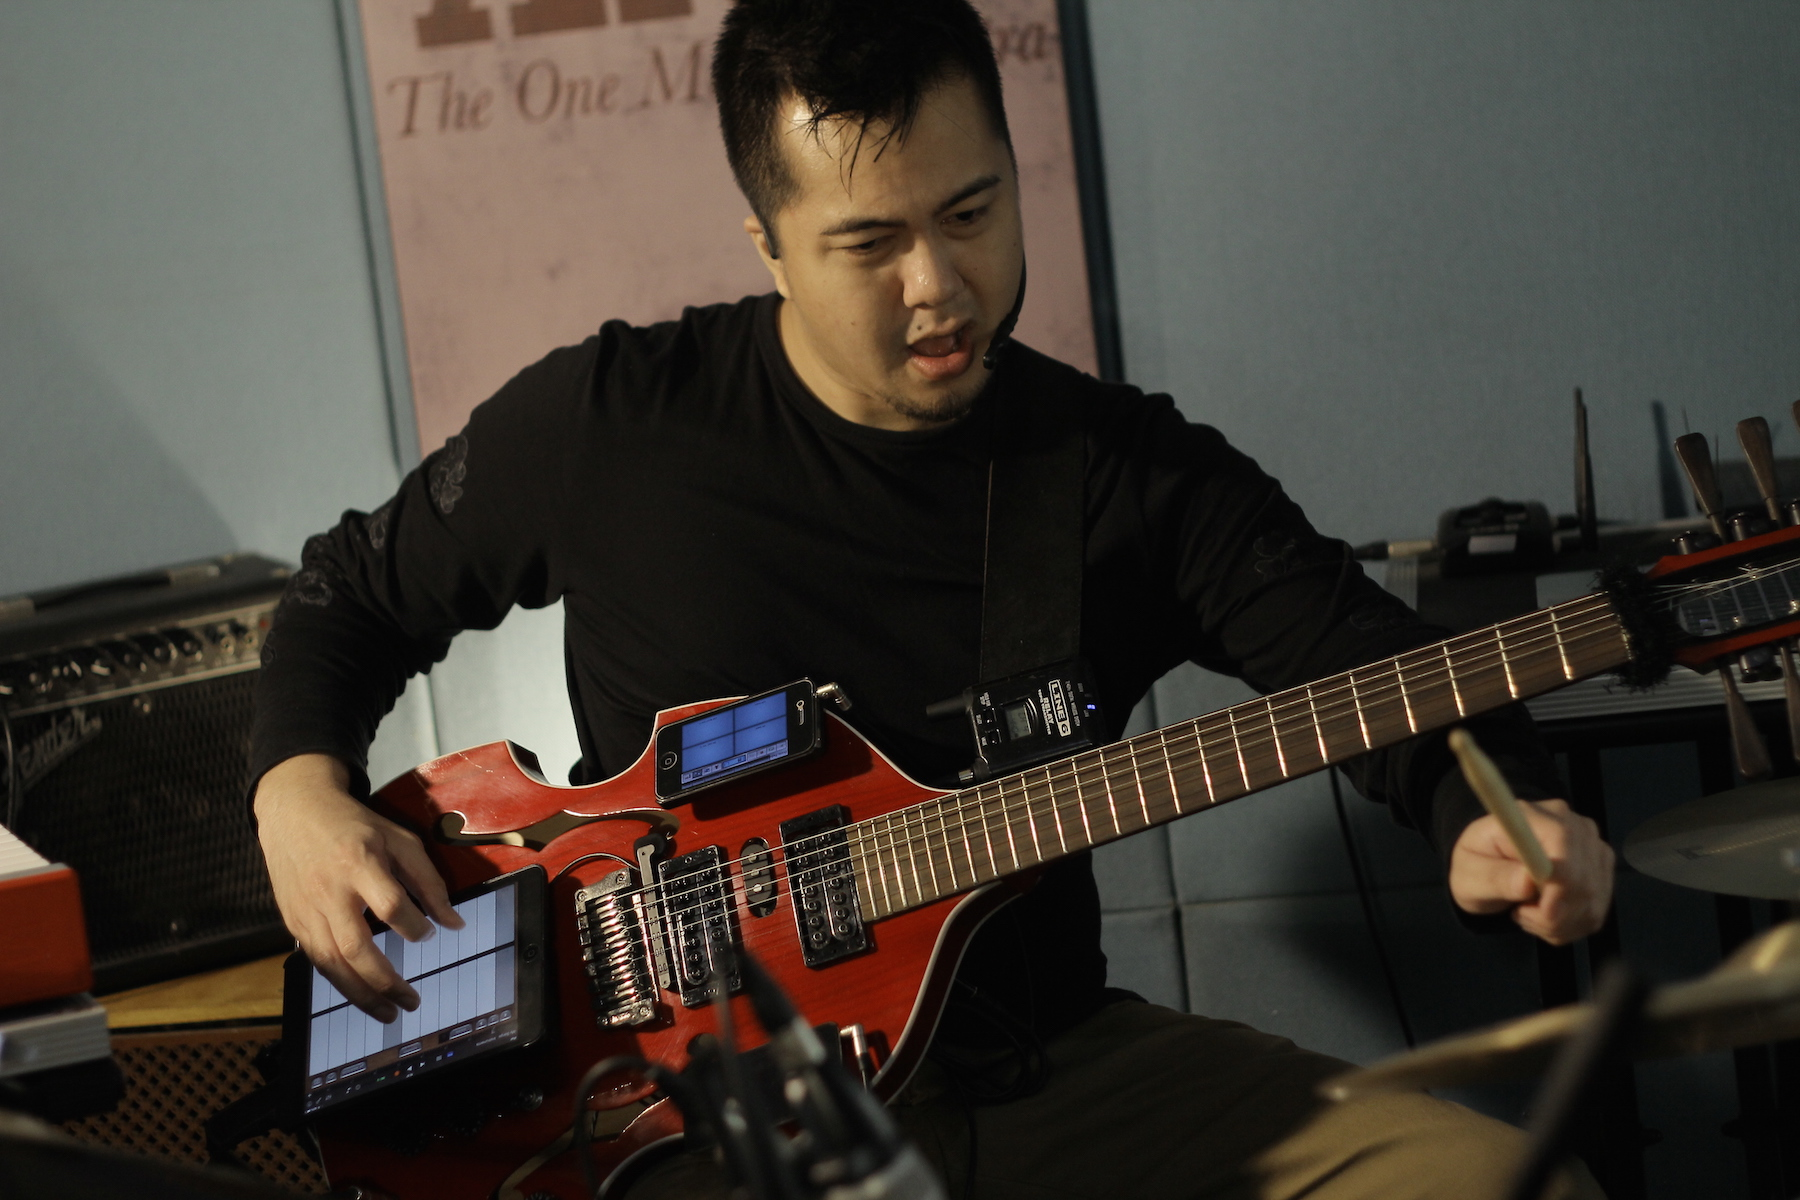 Ang The One Man Orchestra Talks About How Social Media Gains International Exposure For New Artists